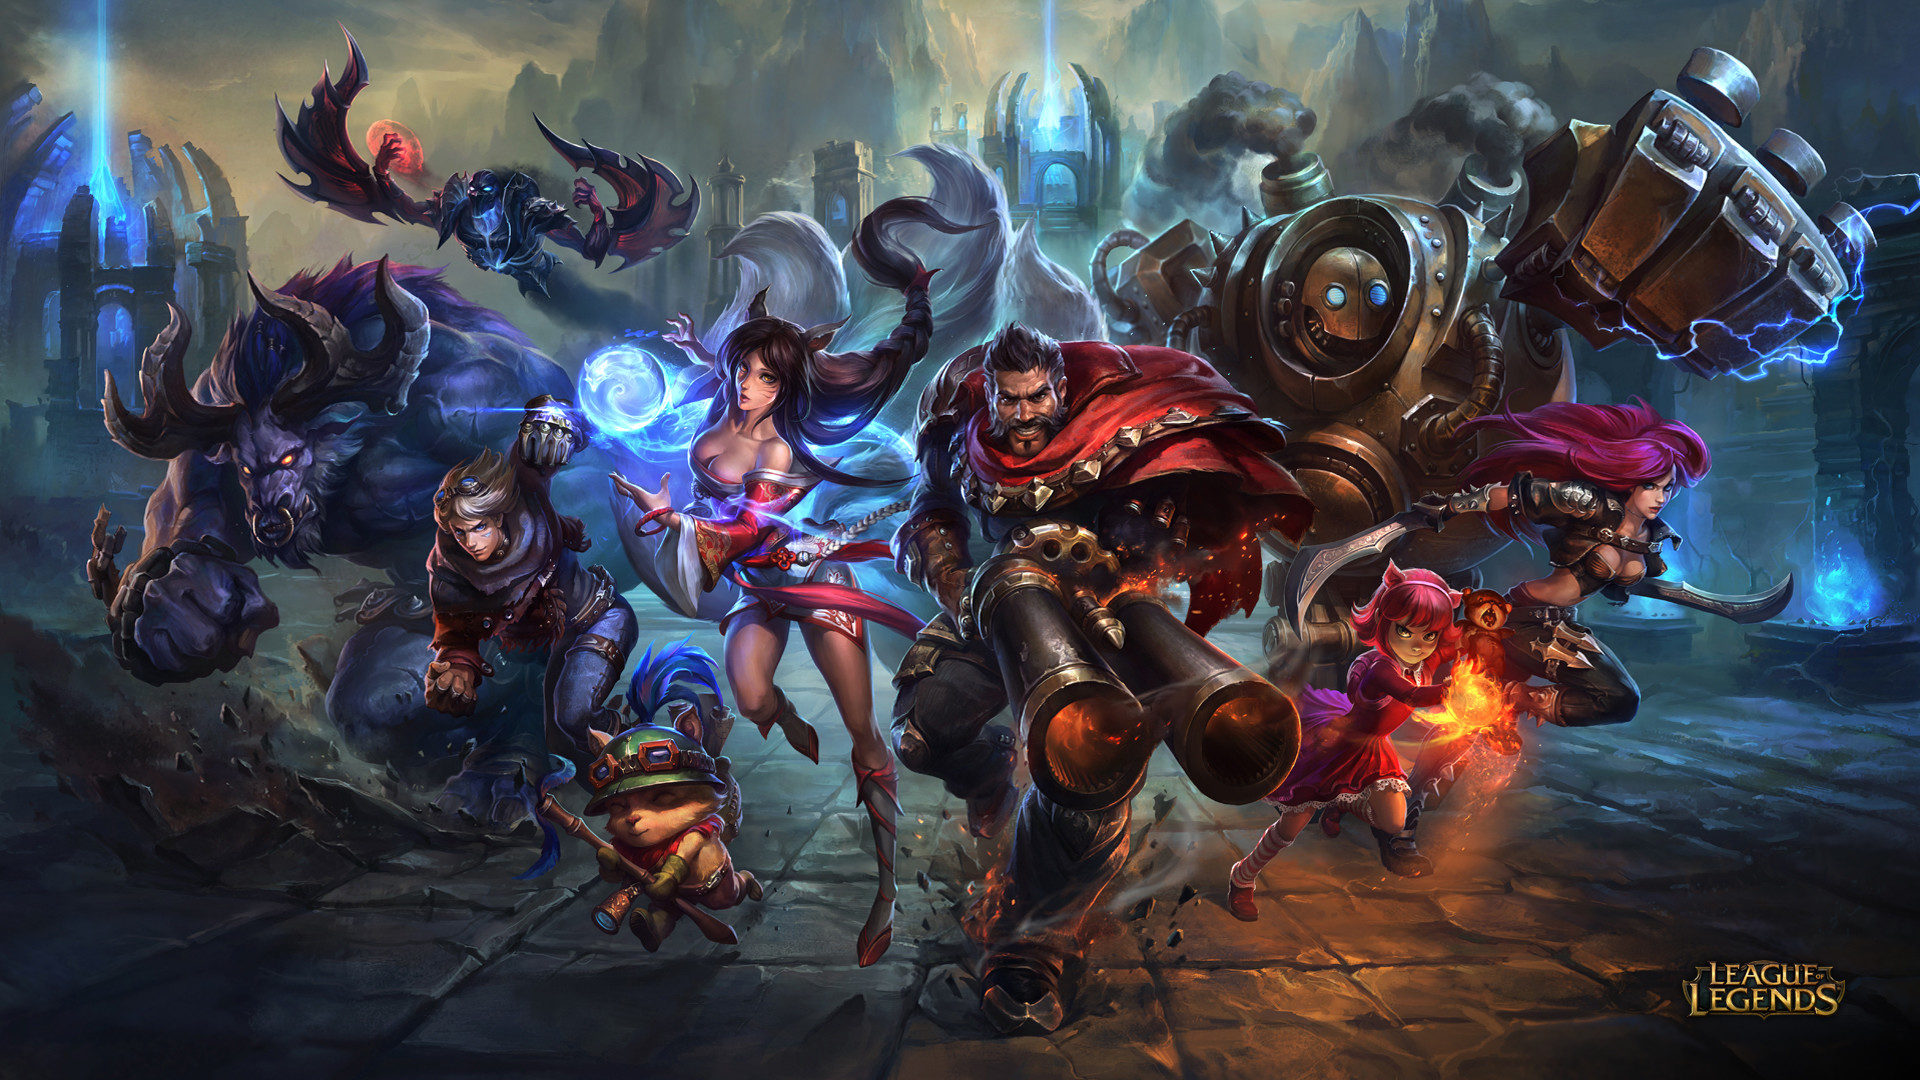 League Of Legends epinleri Botturk'te